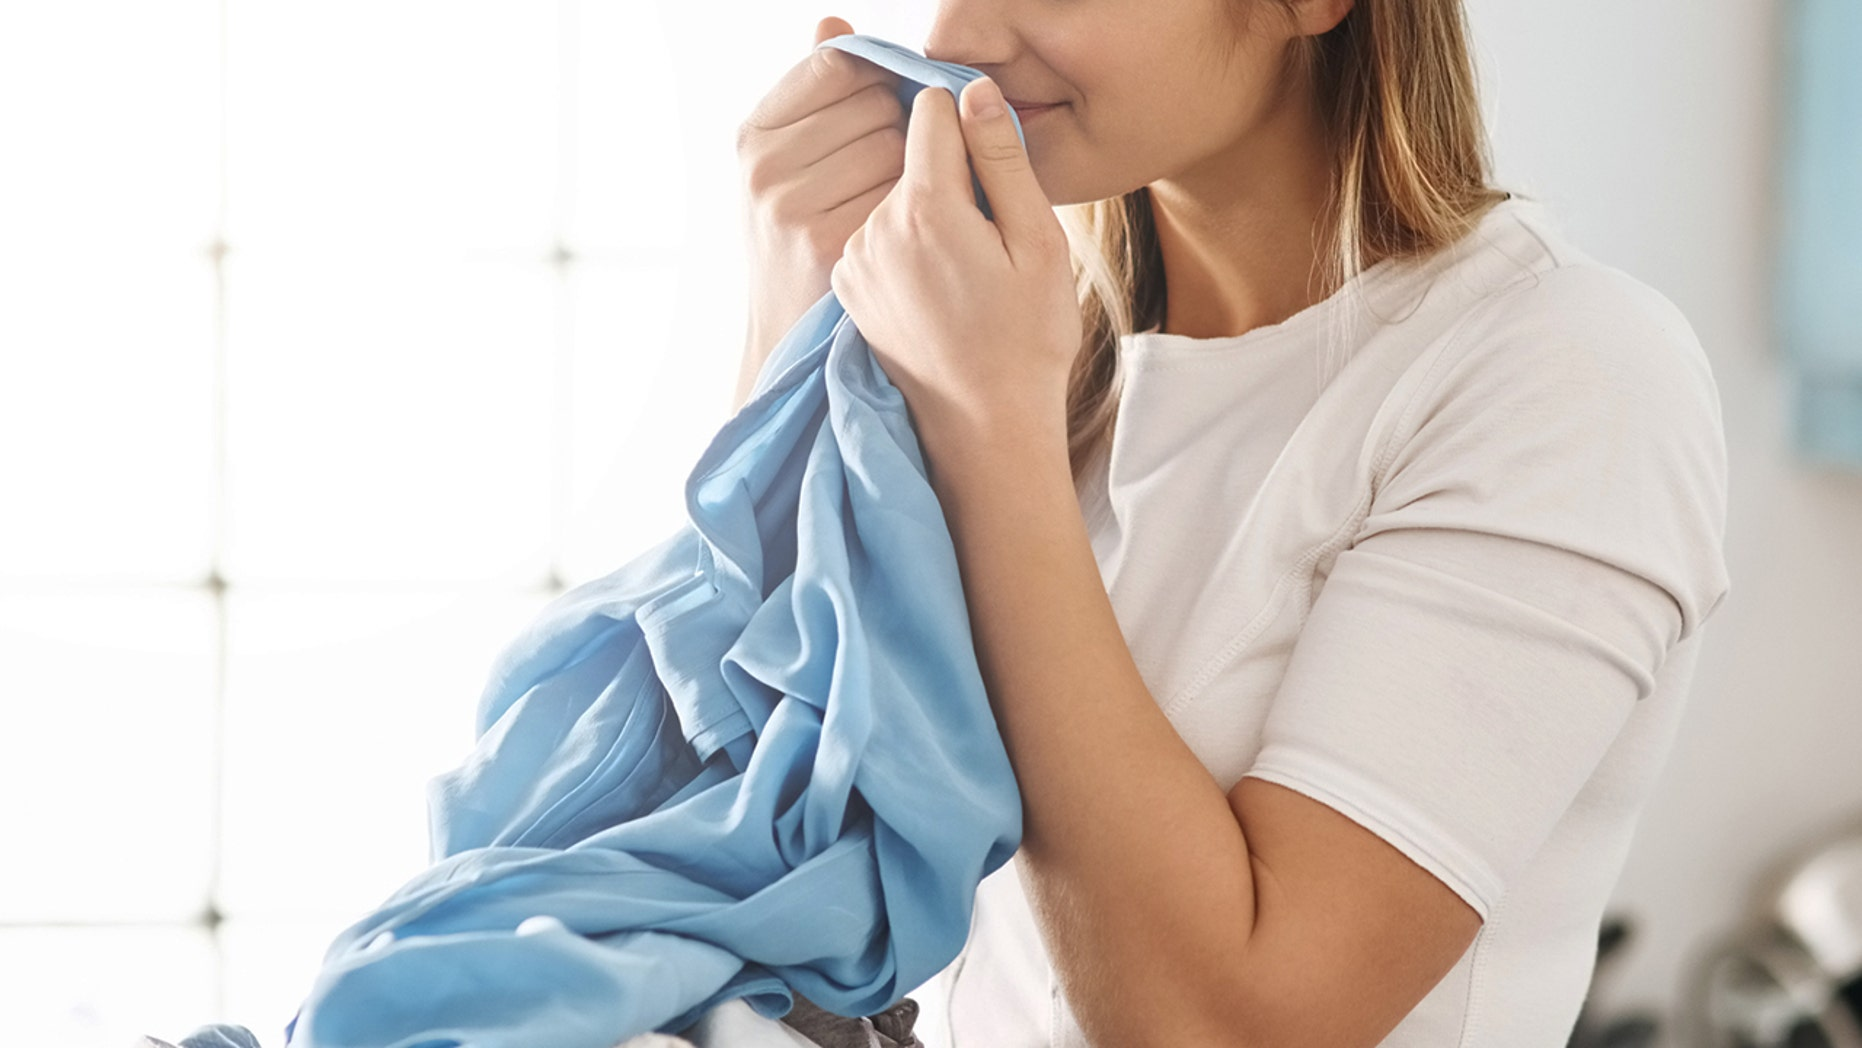 Unilever's new product can help keep laundry day away at bay and away.